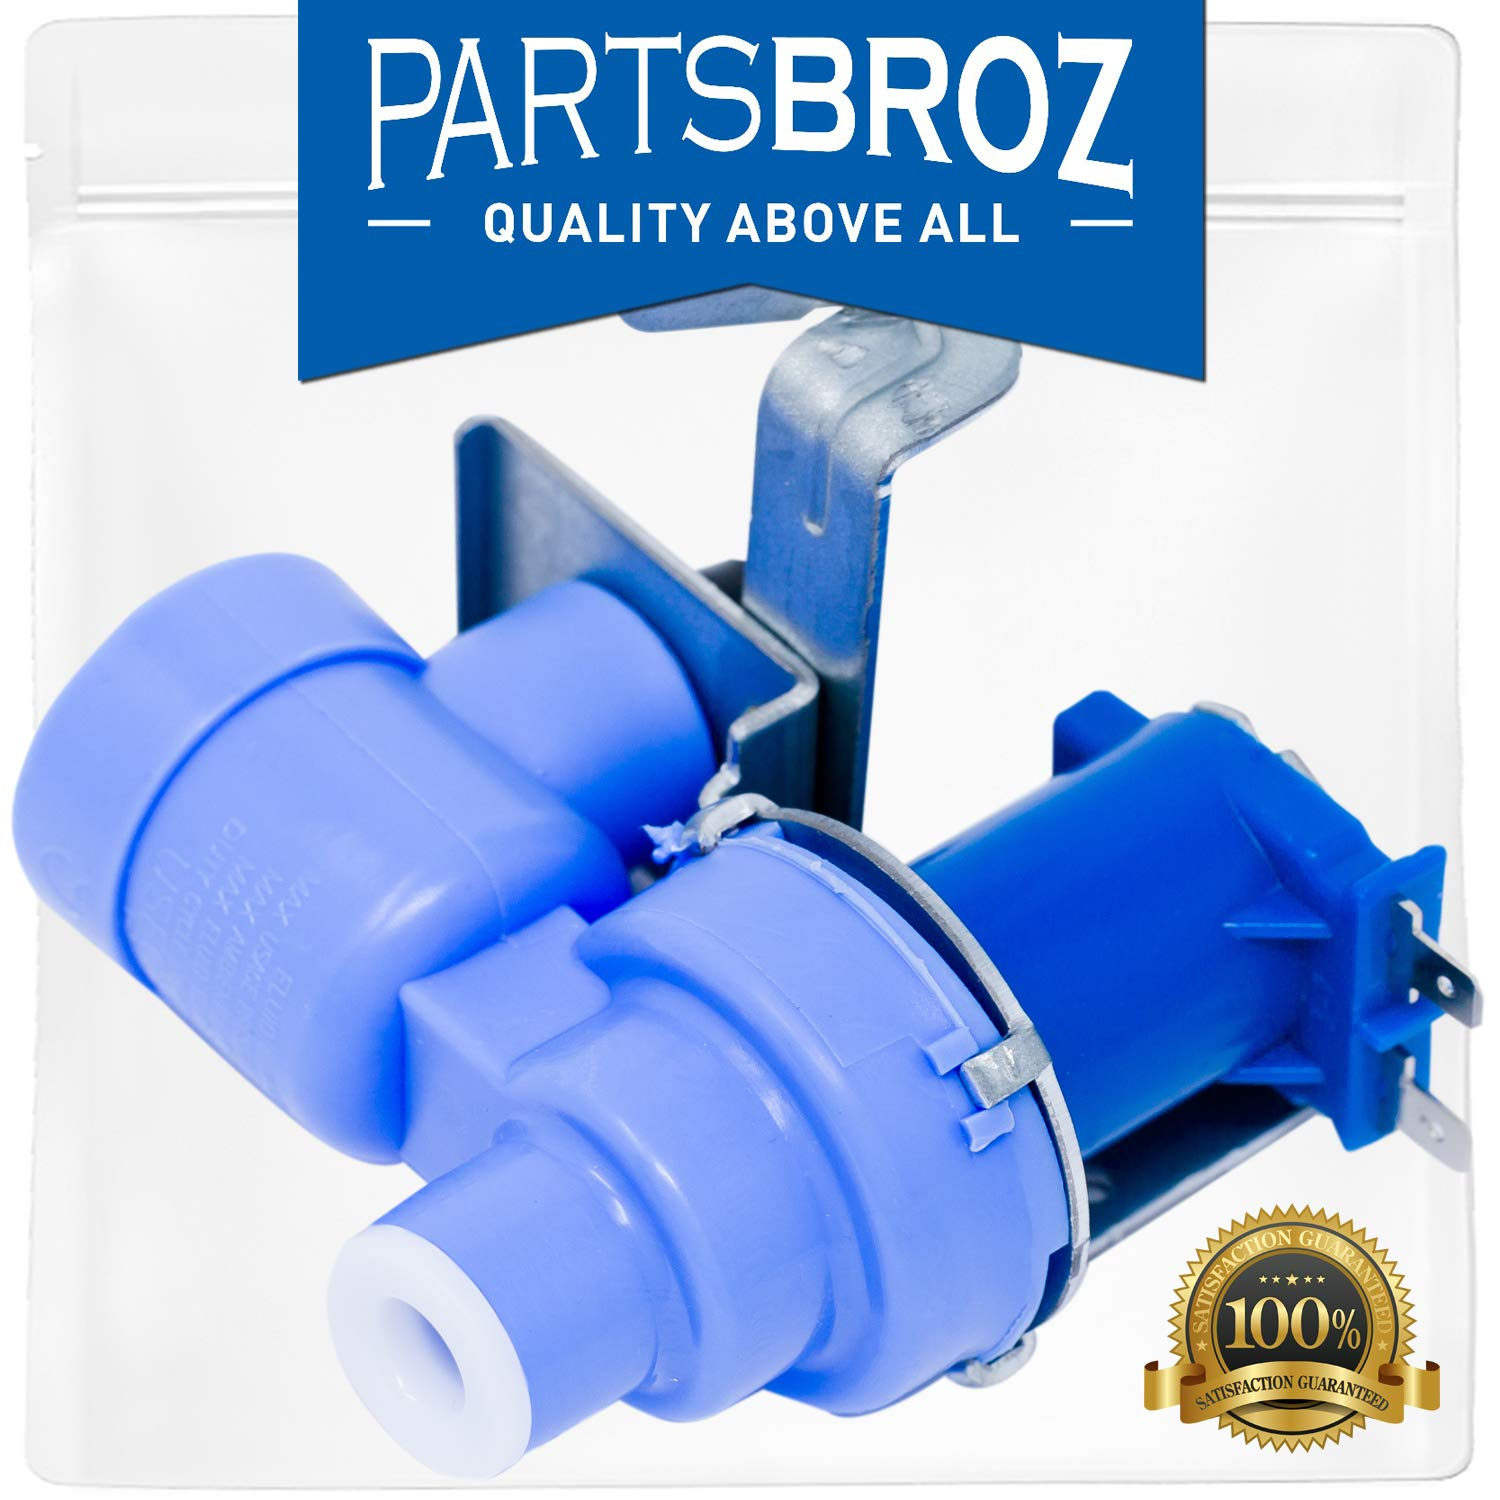 MJX41178908 Water Inlet Valve for LG Refrigerators by PartsBroz - Replaces Part Numbers AP4451762, 1398828, AH3536019, EA3536019 & PS3536019